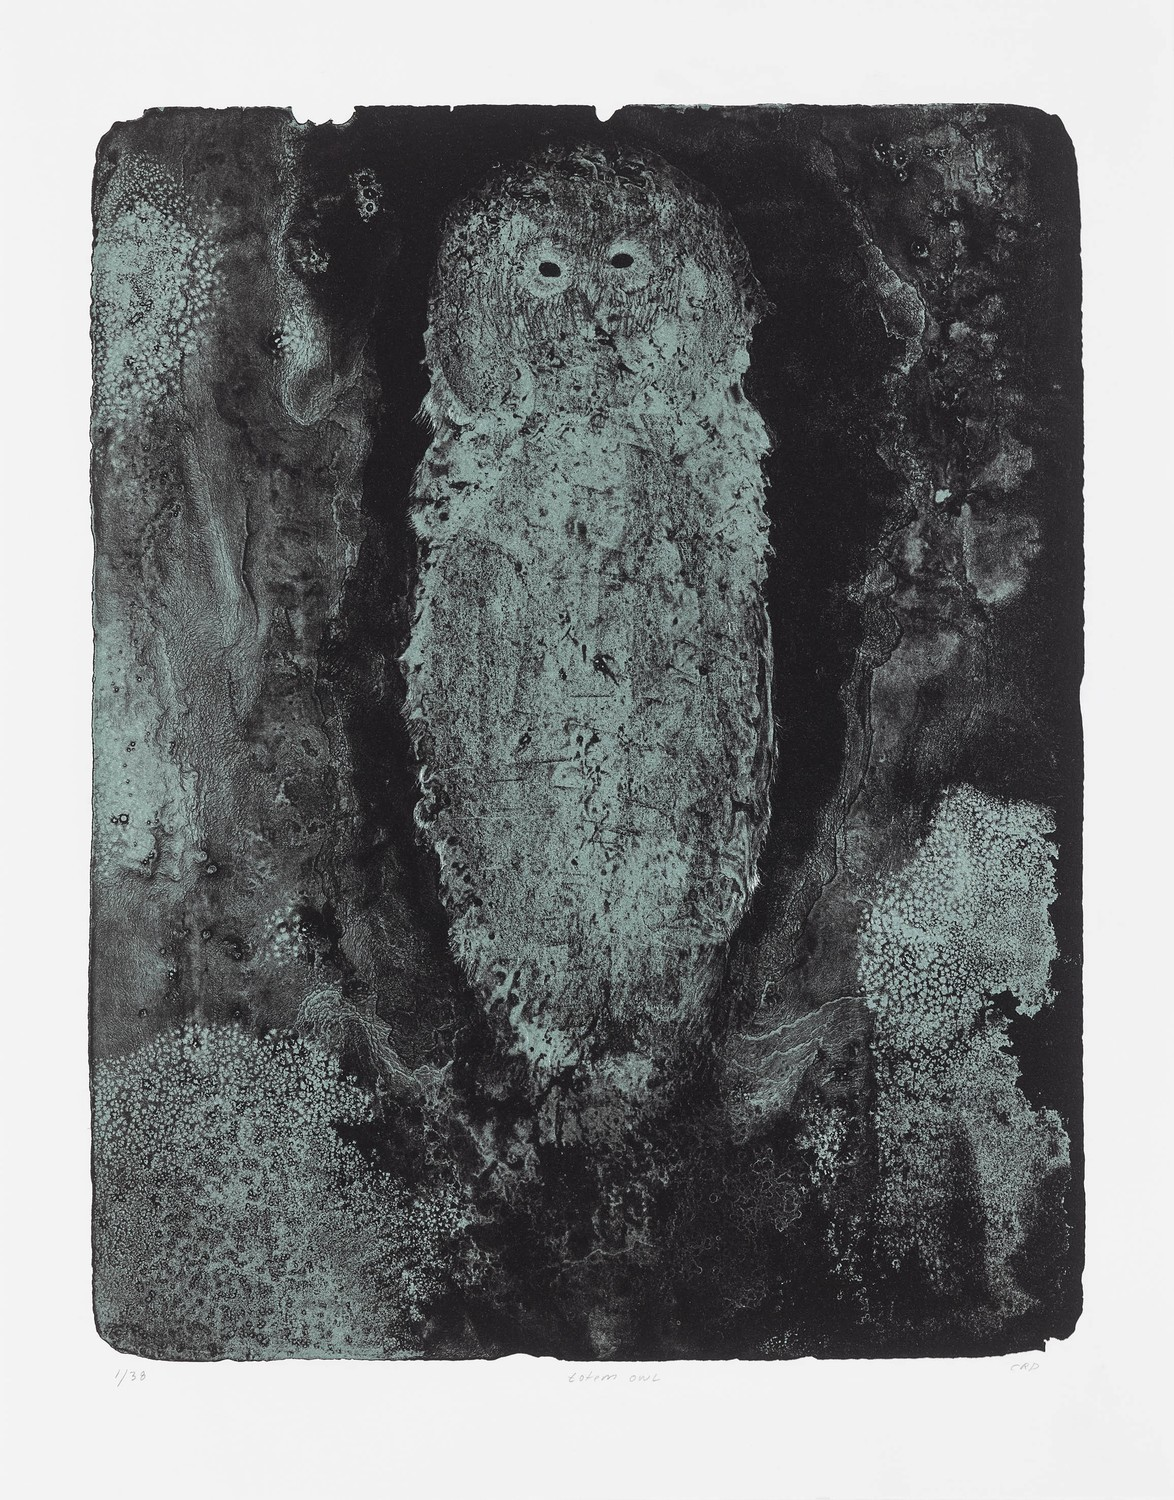 Totem Owl - Lithograph